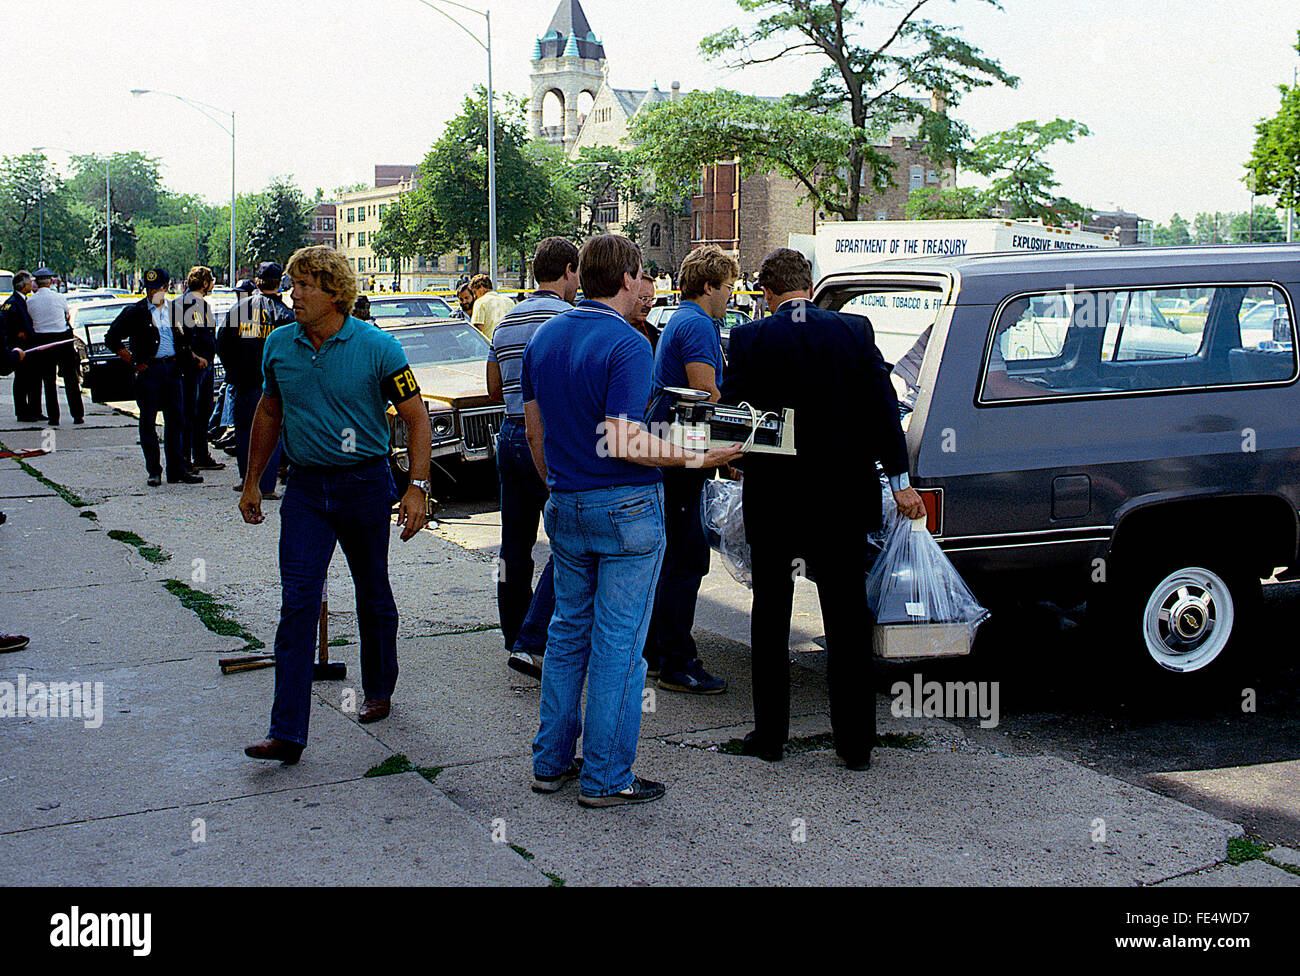 Chicago, Illinois, 5th August, 1986 Federal agents along with Chicago Police raid the headquarters Temple building - Stock Image